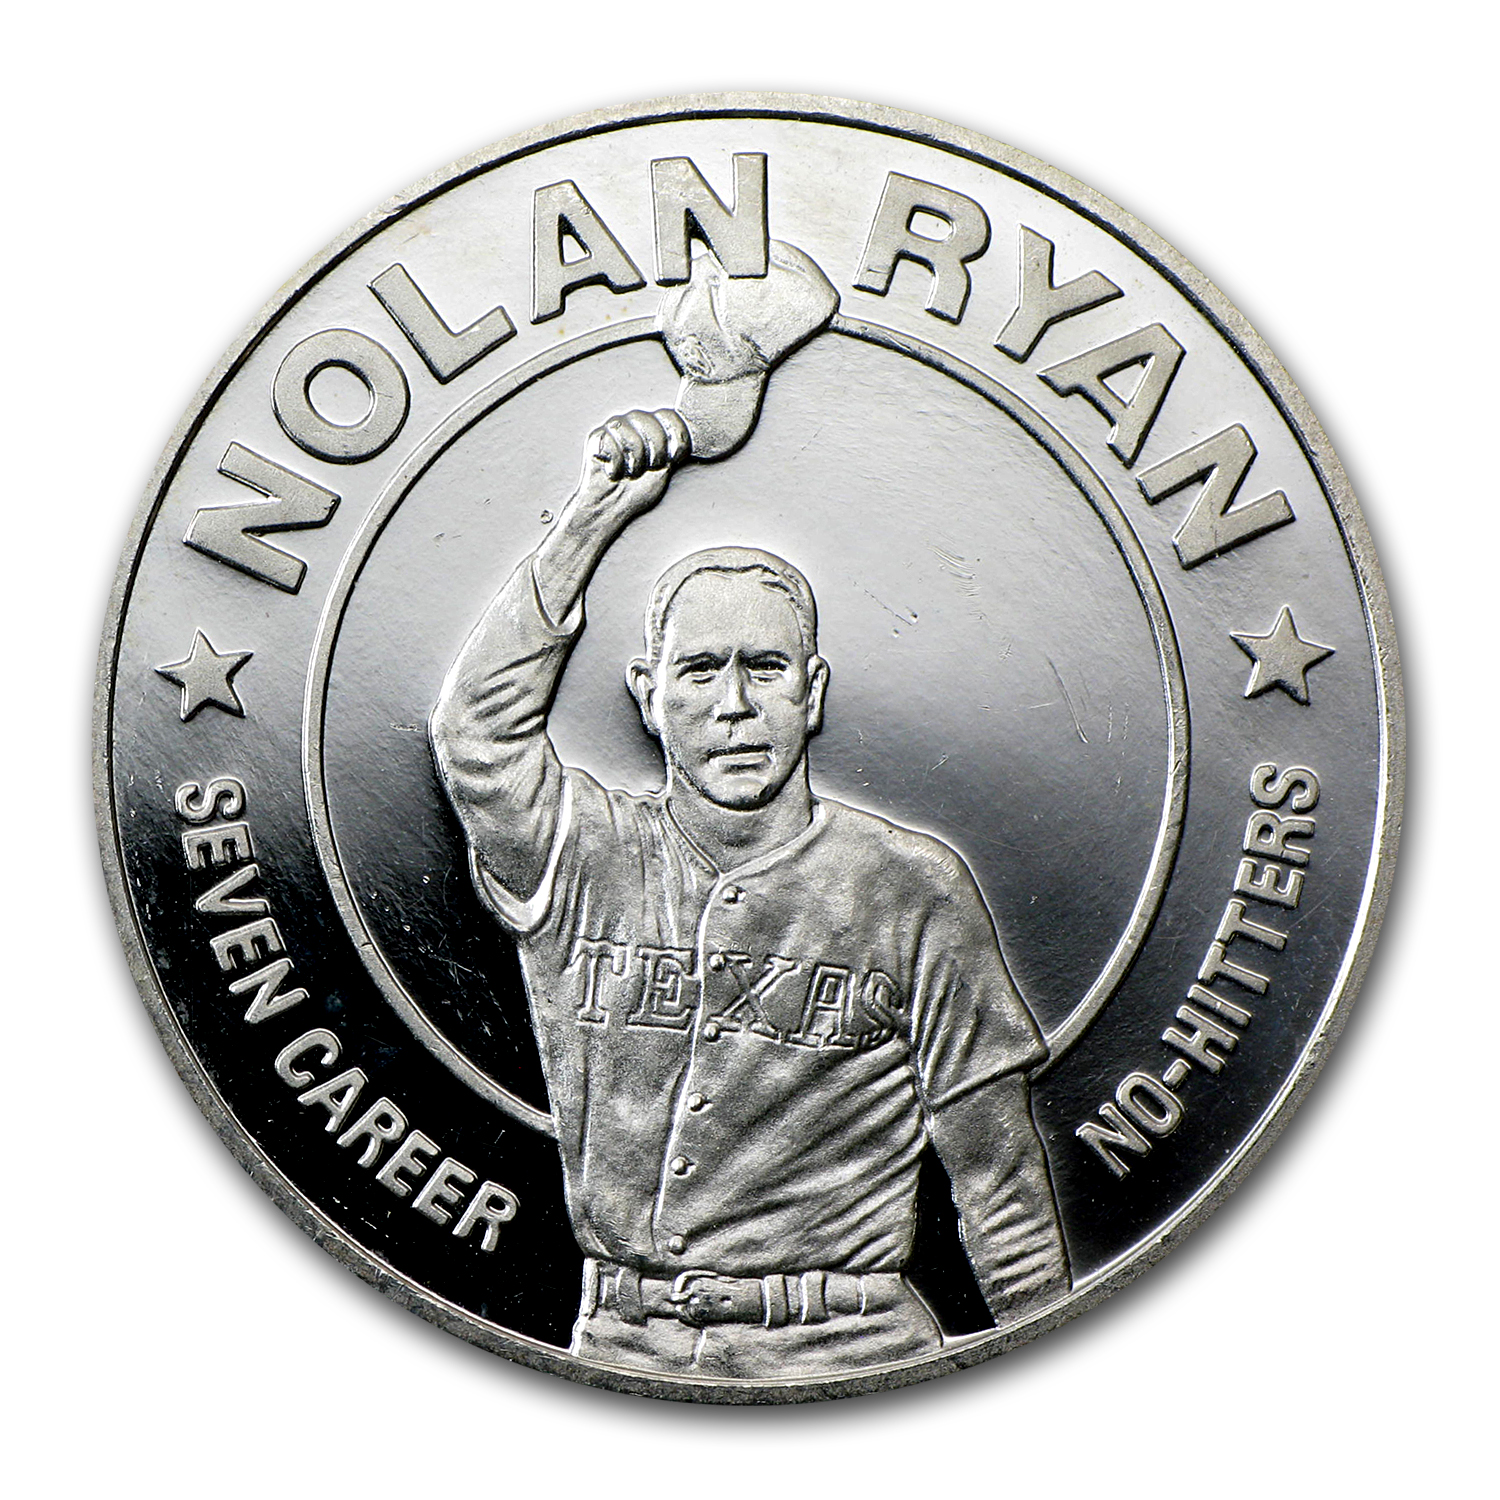 Liberia 1993 10 Dollar 1 Oz Silver Proof  Nolan Ryan